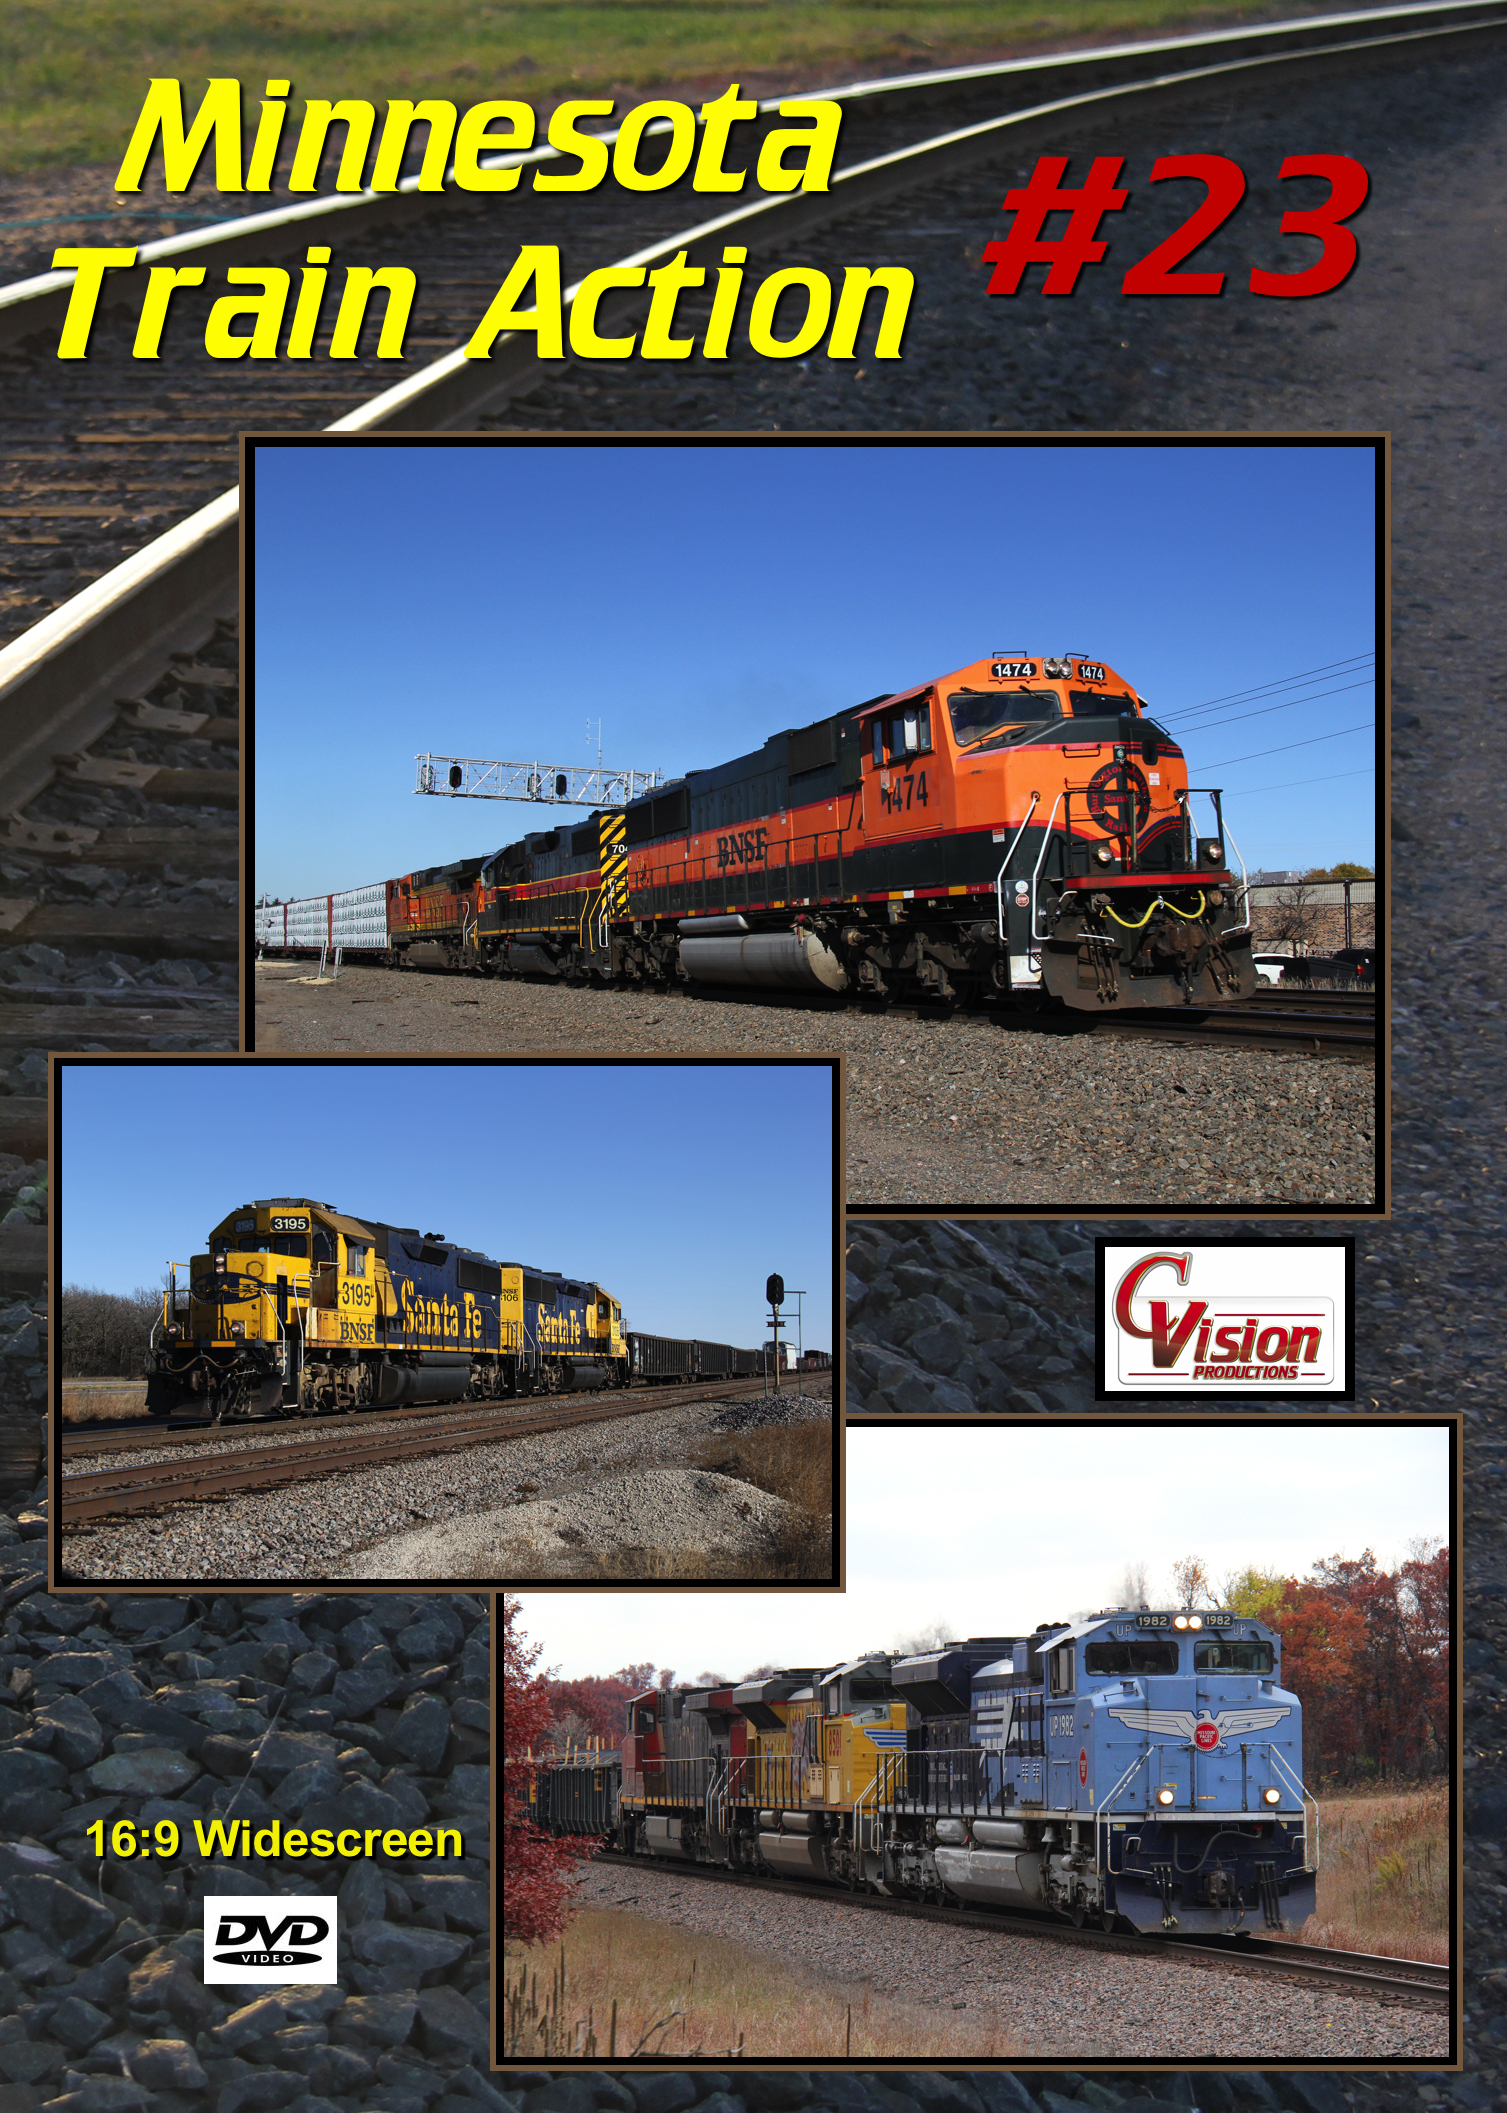 Minnesota Train Action Number 23 DVD C Vision Productions MTA23DVD